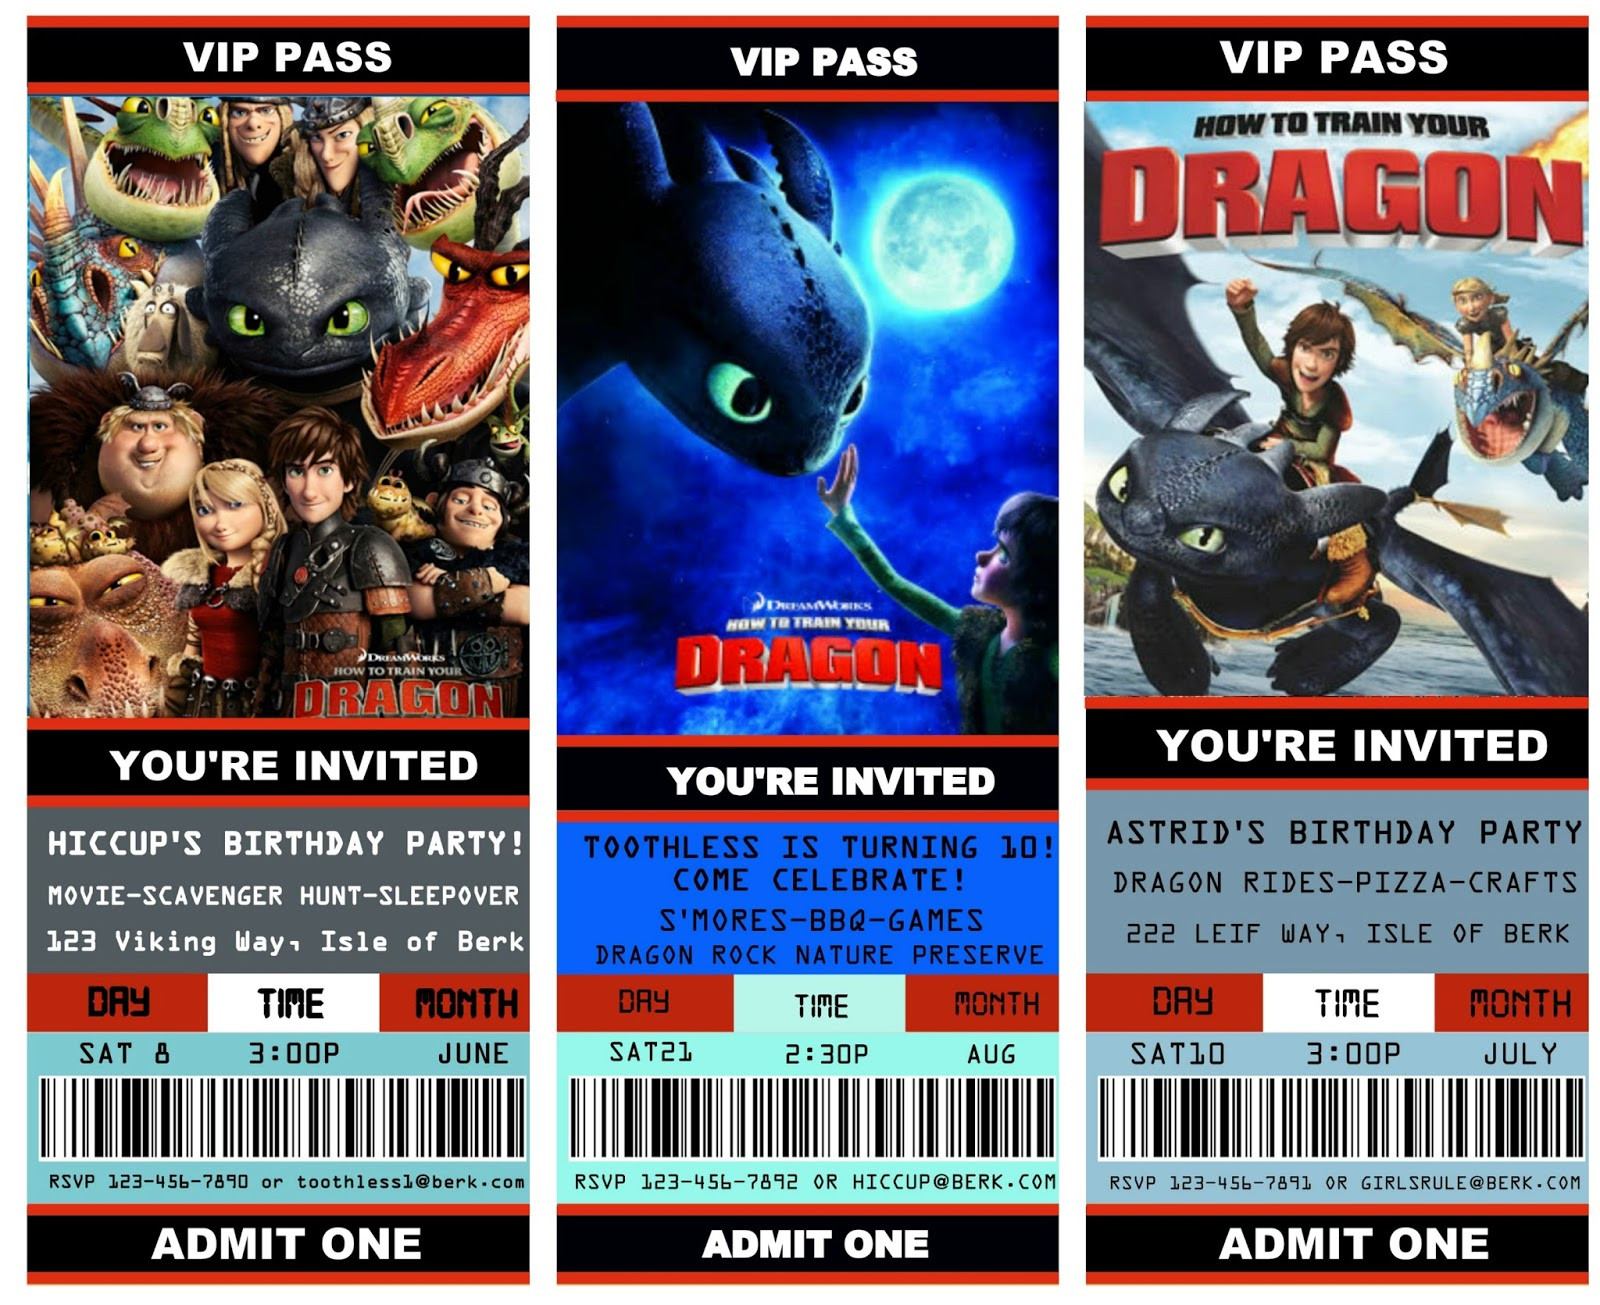 Free Printable Movie Ticket Style Invitations: How To Train Your Dragon  Movie Ticket Invitations Template